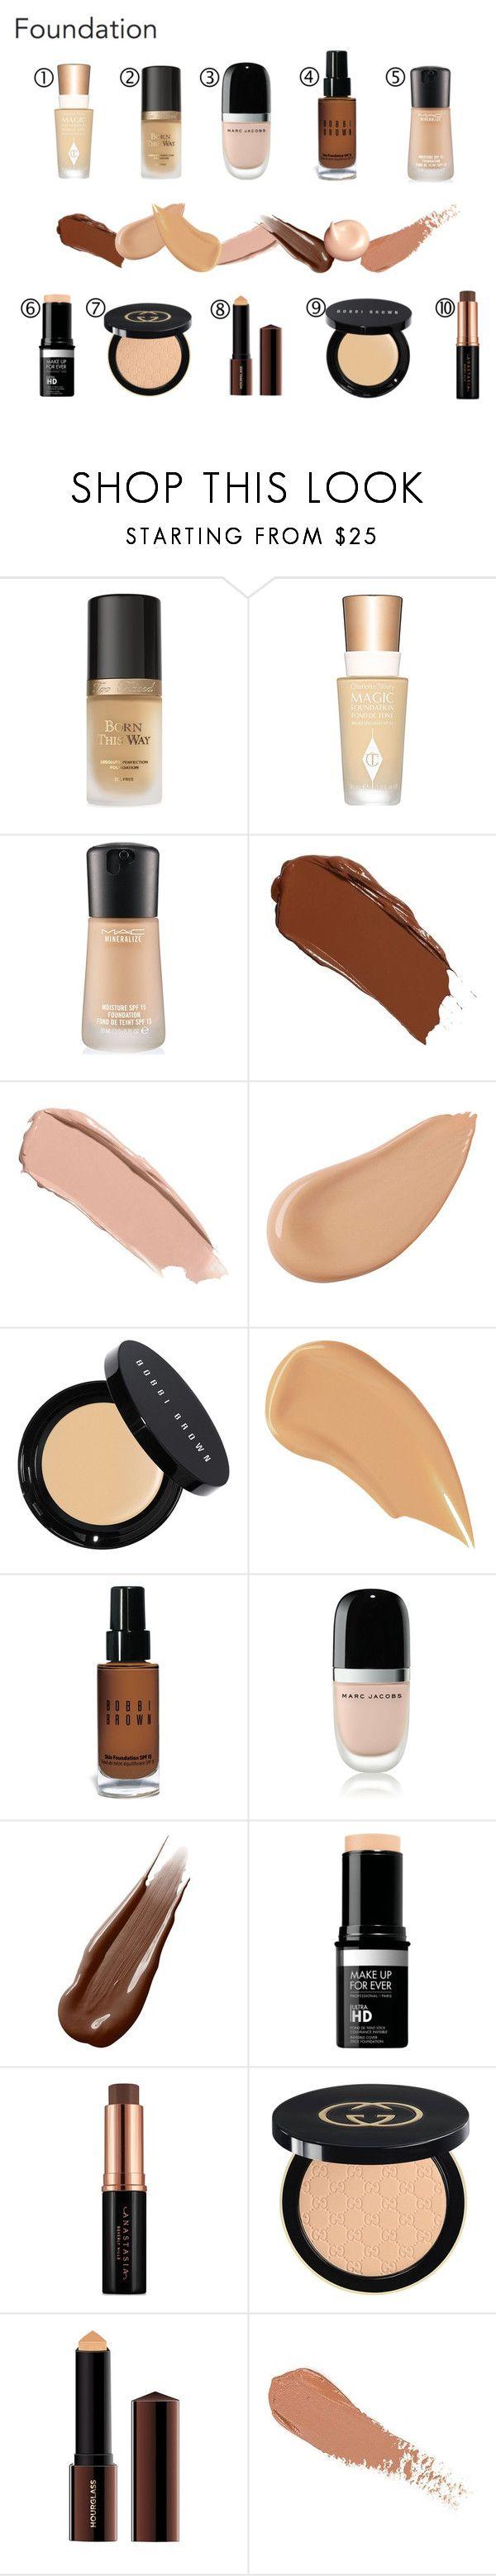 """FOUNDATION"" by spark-llay ❤ liked on Polyvore featuring beauty, Too Faced Cosmetics, Charlotte Tilbury, MAC Cosmetics, Shiseido, Bobbi Brown Cosmetics, NARS Cosmetics, Marc Jacobs, Hourglass Cosmetics and MAKE UP FOR EVER"